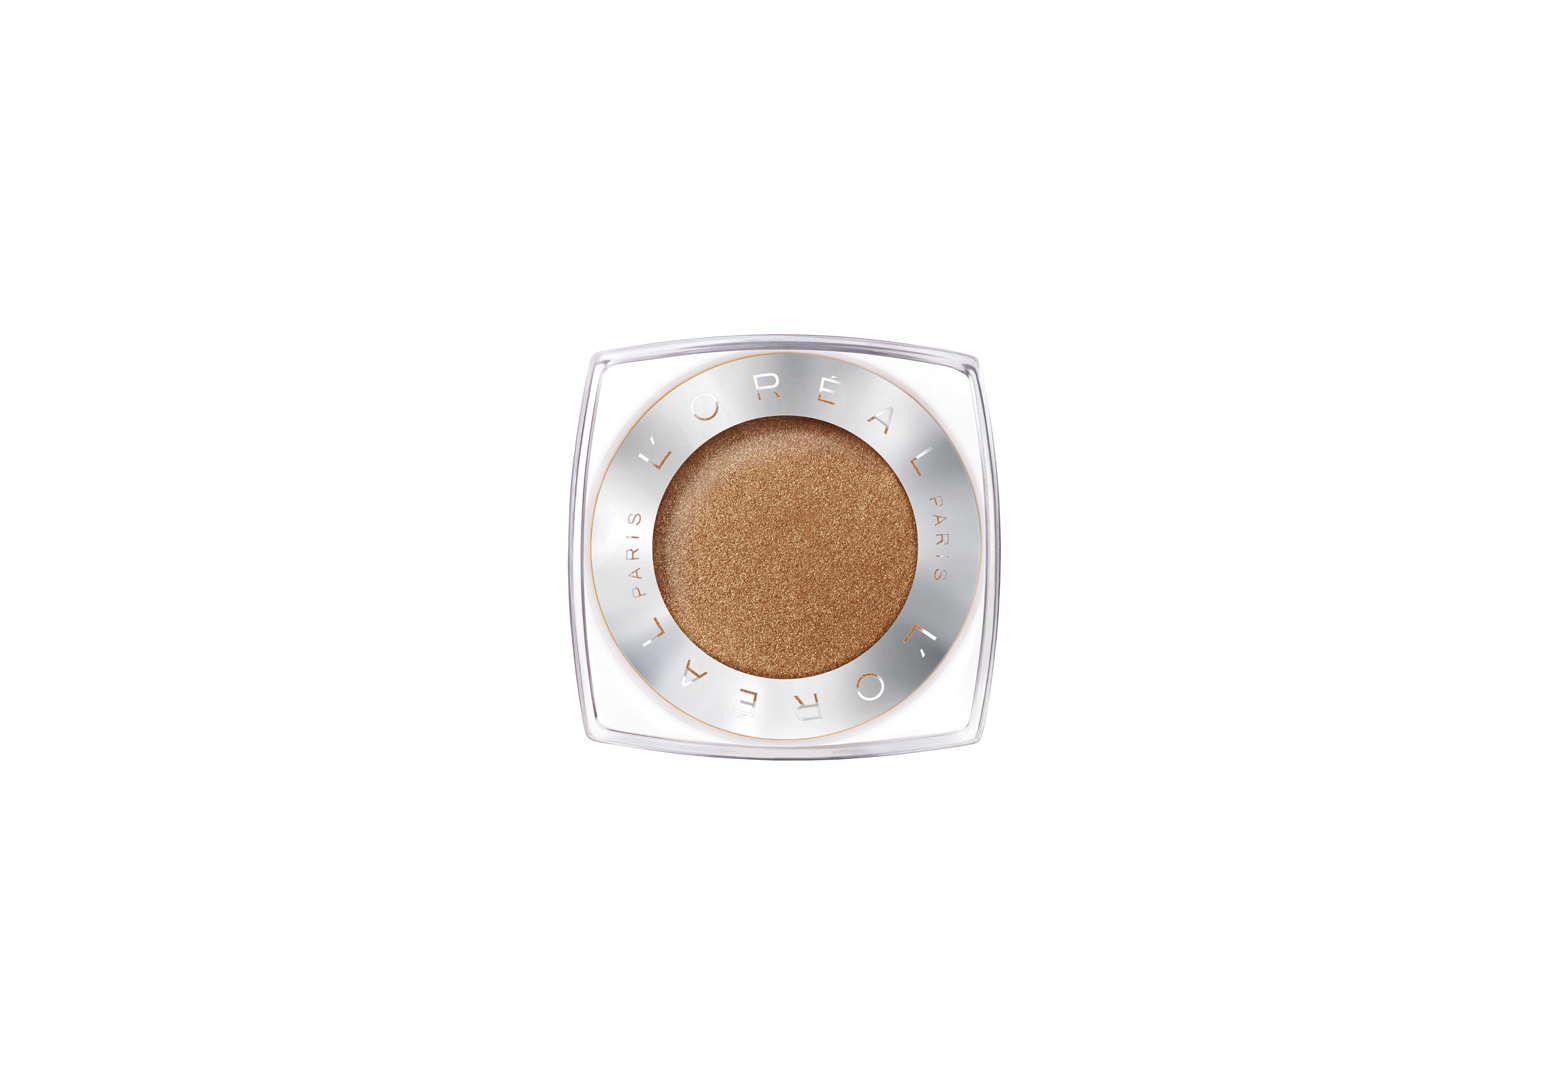 L'Oréal Infallible Eye Shadow in Amber Rush